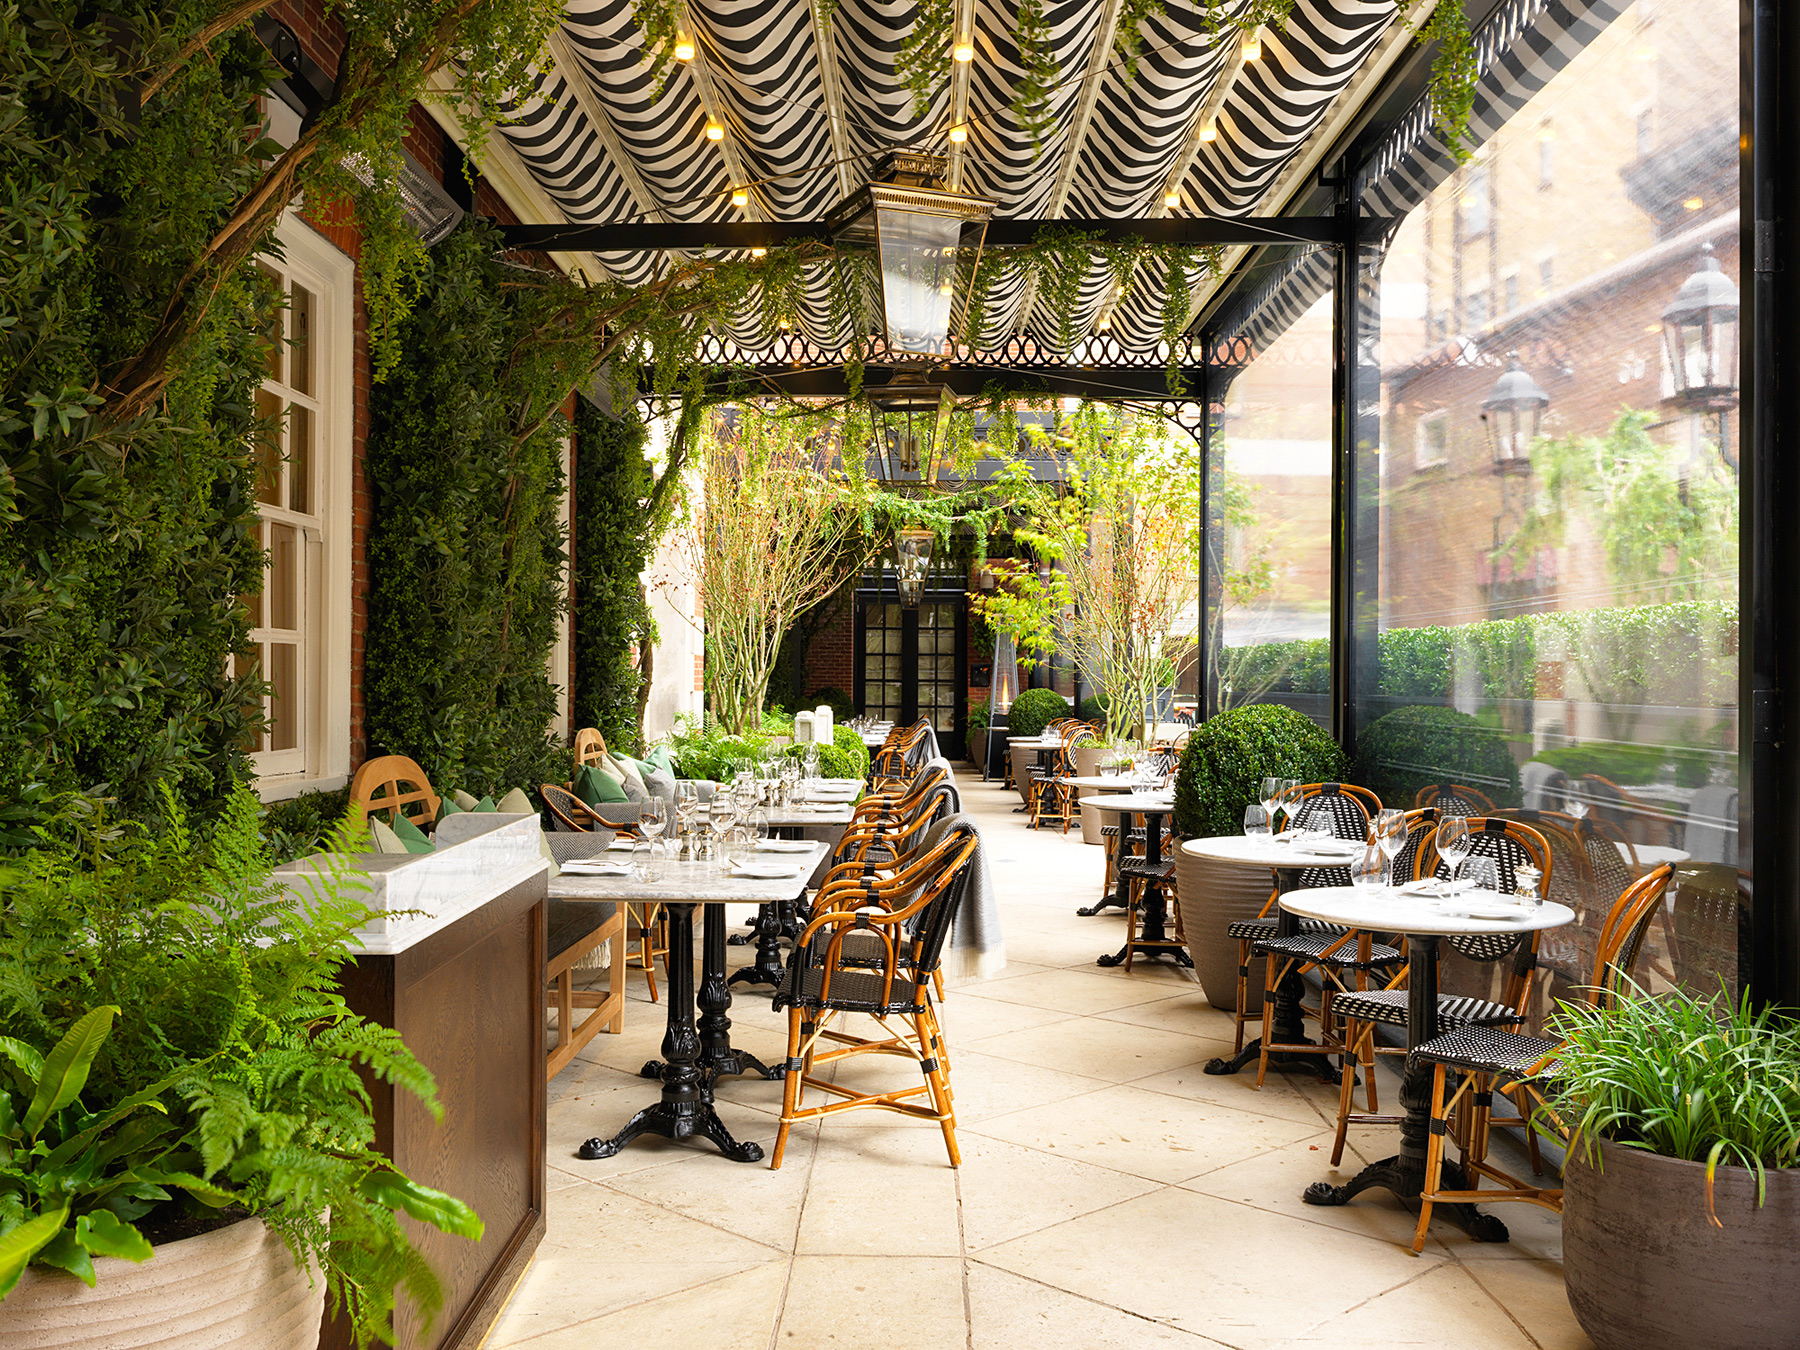 dalloway terrace at the bloomsbury london On in the terrace